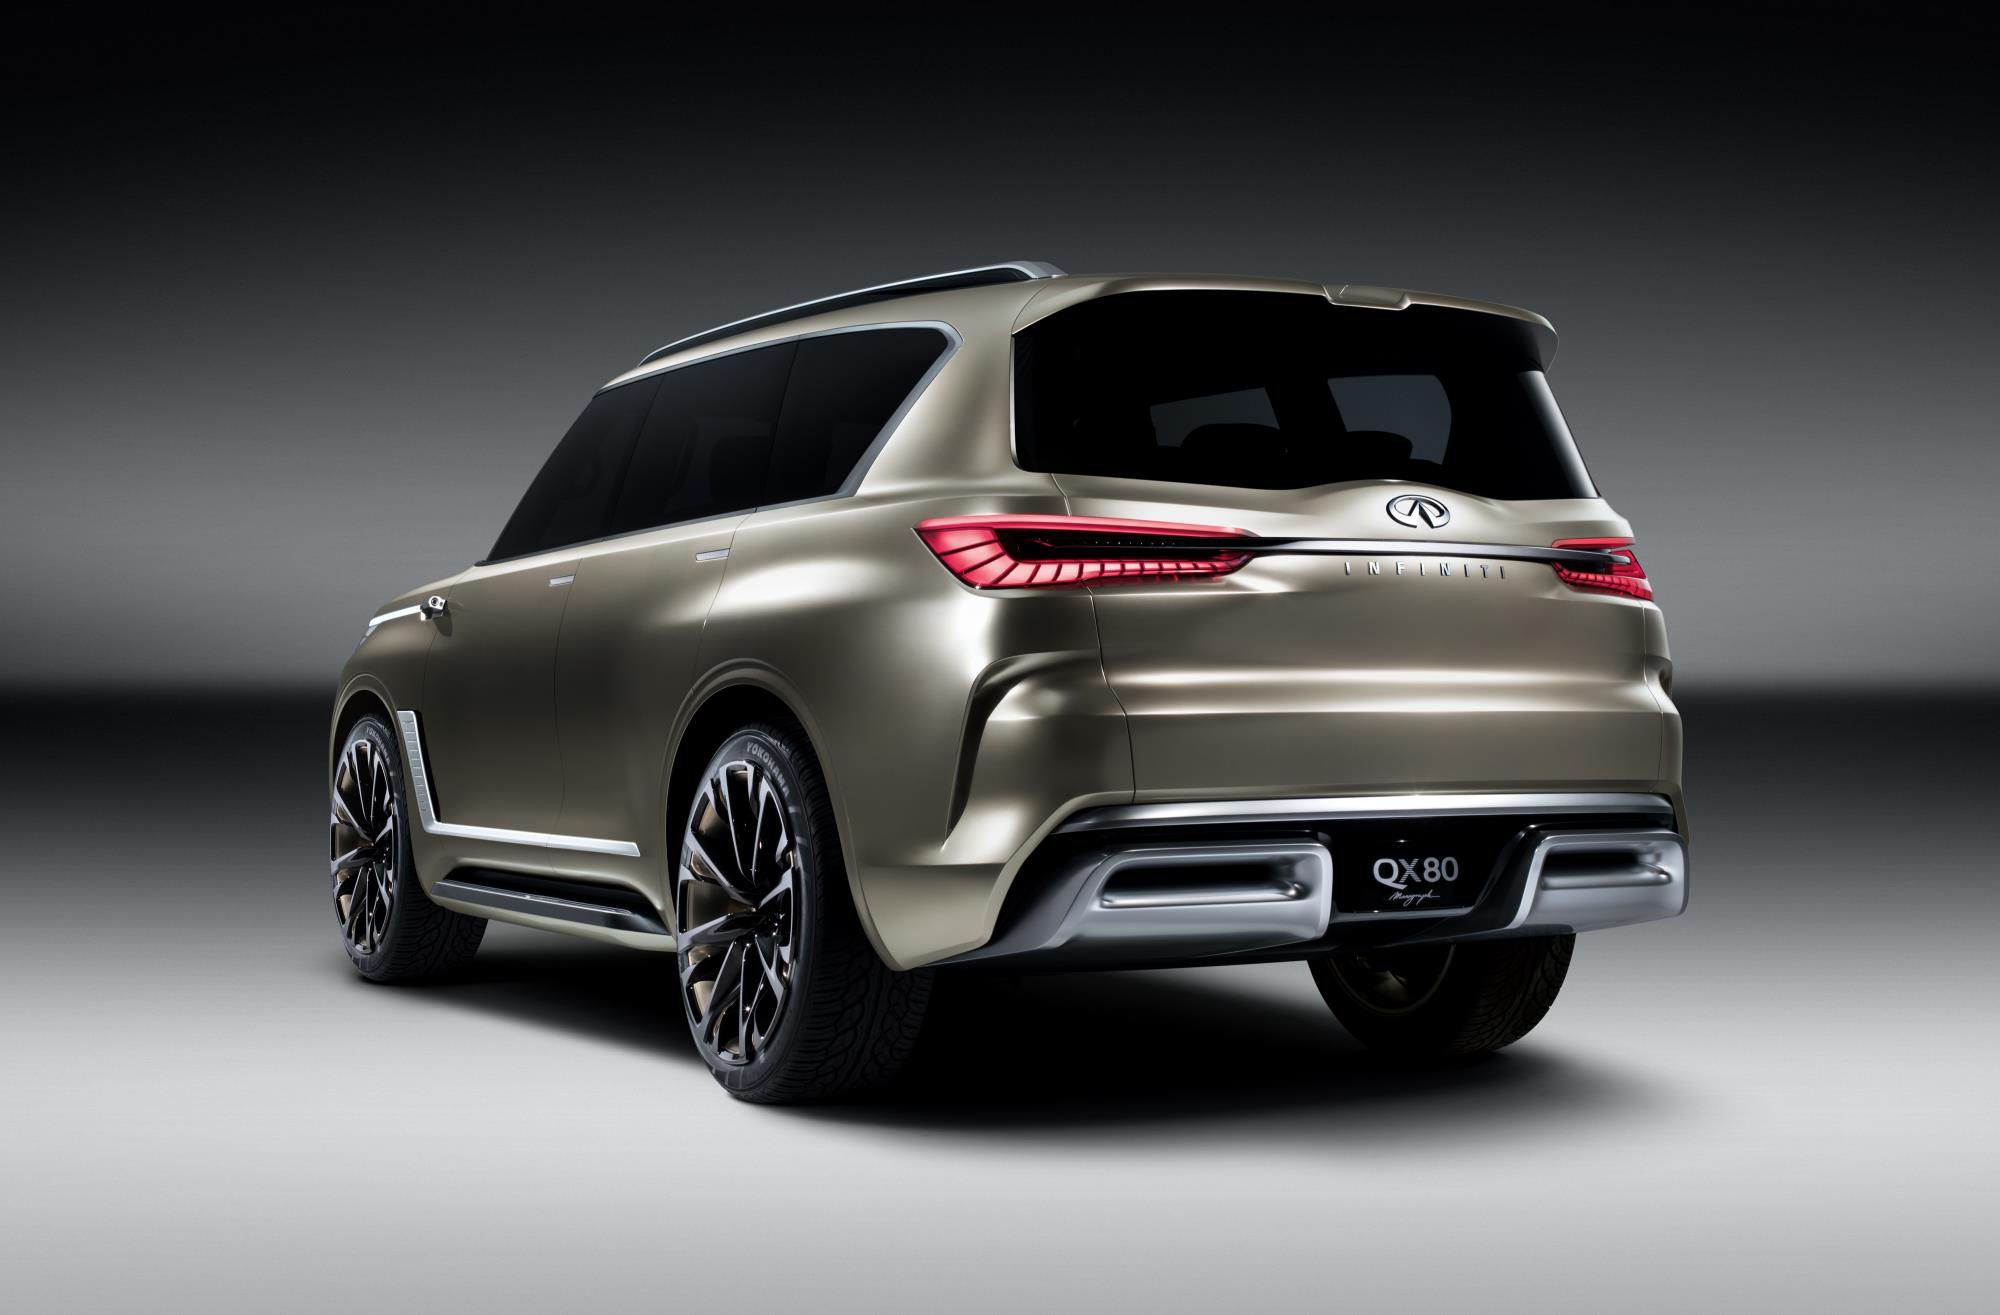 2018 infiniti qx80 to get monograph concept styling cues same underpinnings autoevolution. Black Bedroom Furniture Sets. Home Design Ideas